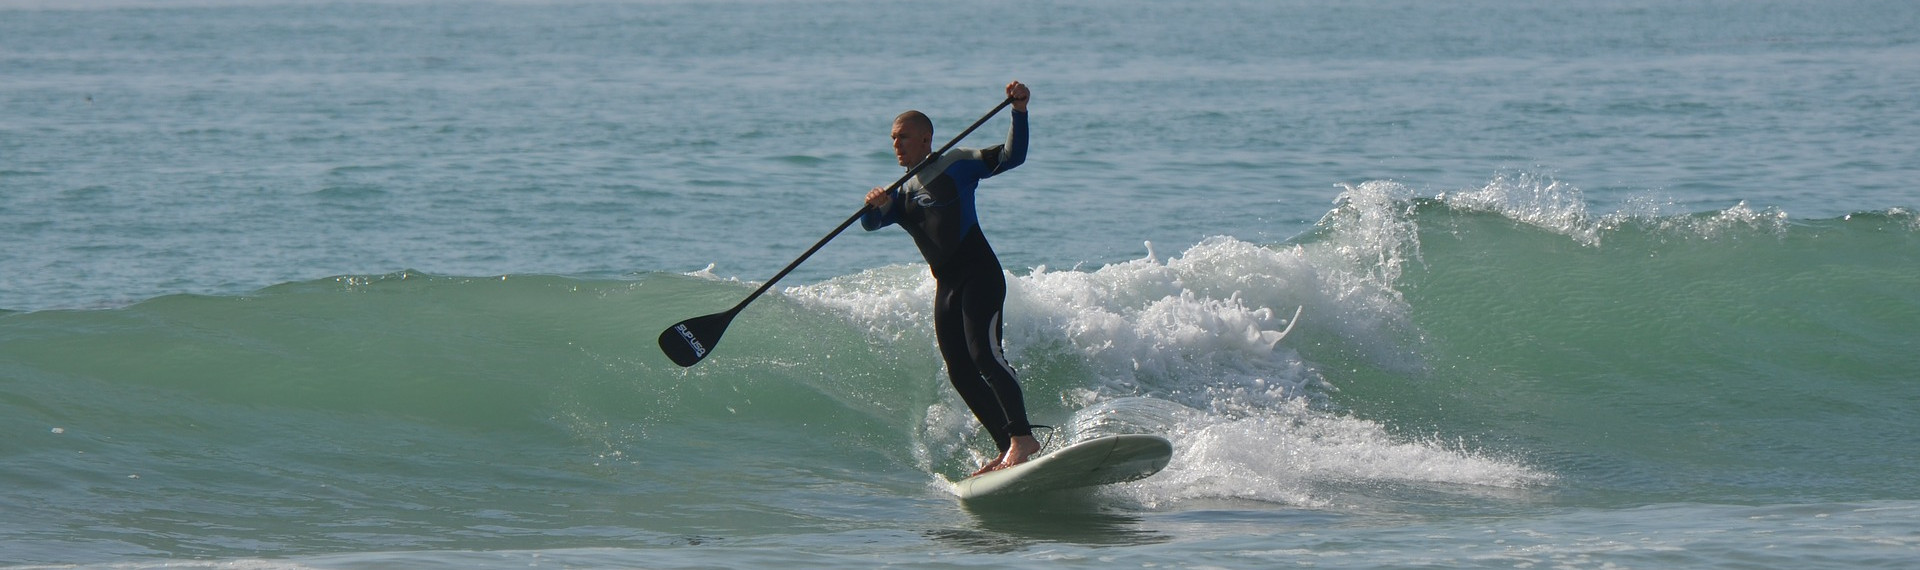 Stand Up Paddle à Barcelone | Pissup ✪ | Le Site EVG n°1